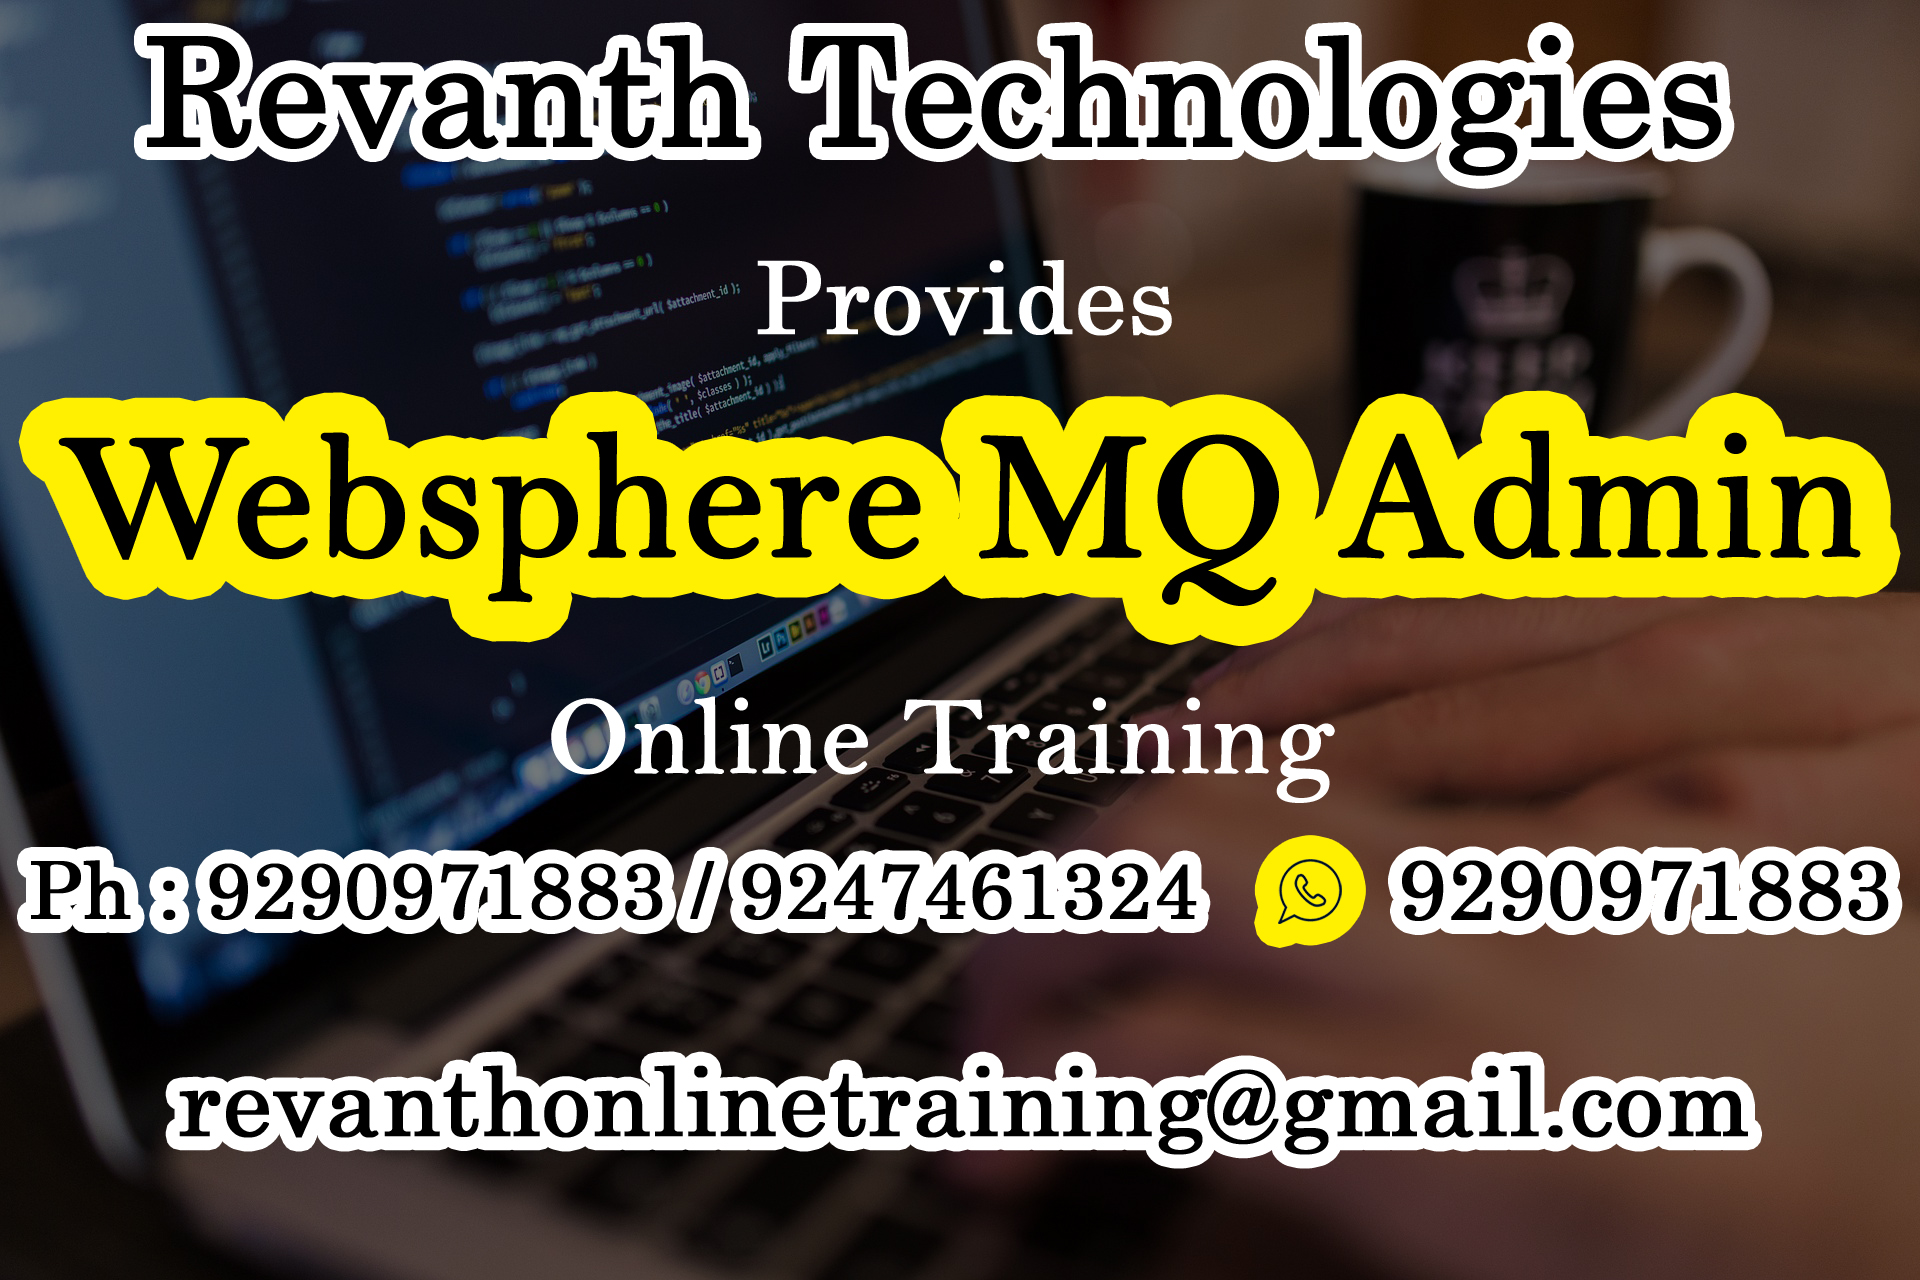 Websphere MQ Admin Online Training from India